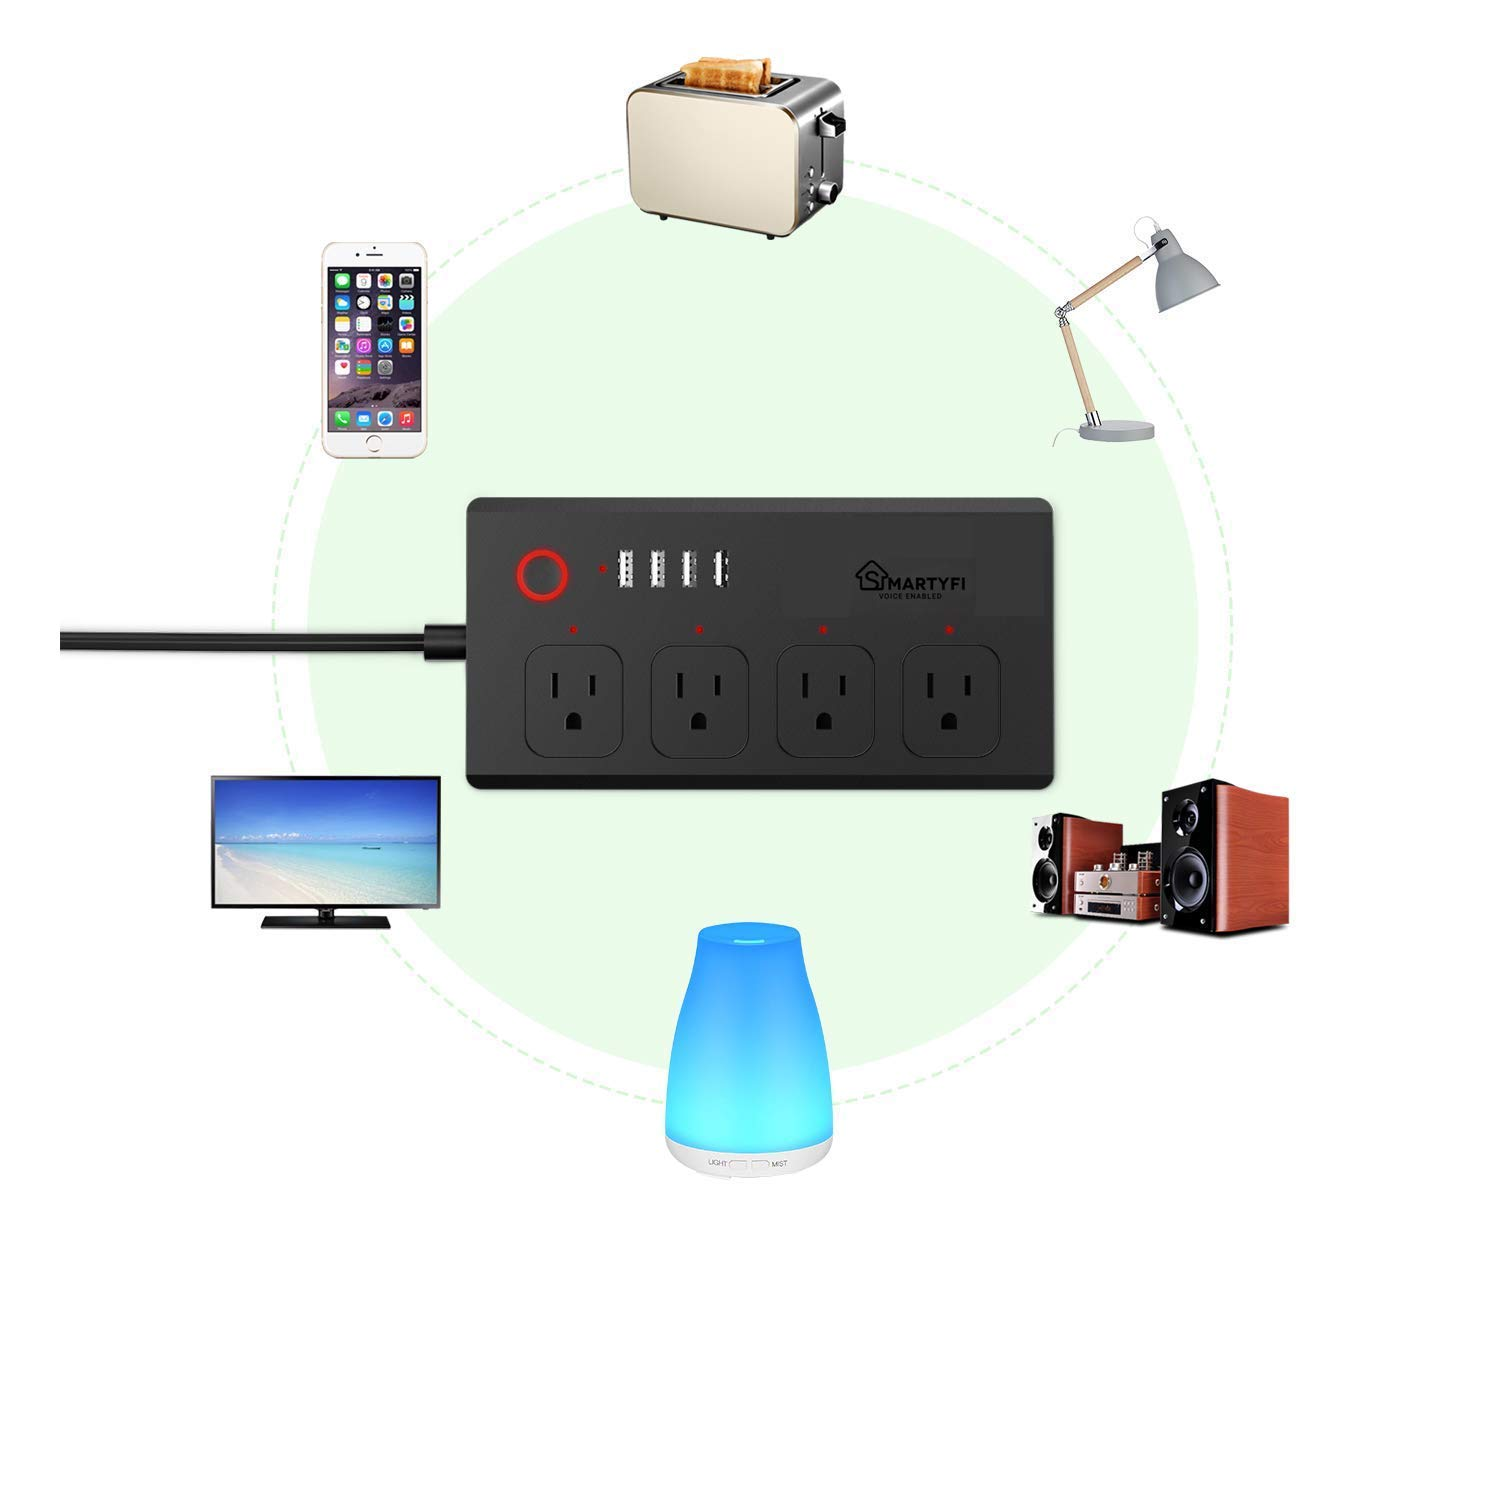 Smart Power Strip Works with Alexa and Google Home, SMARTYFI USB Power Strip and Smart Surge Protector, No Hub Required, Smart Life App, Multi Outlet Wifi Surge Protector with 4 AC and 4 USB Ports by SMARTYFI (Image #2)